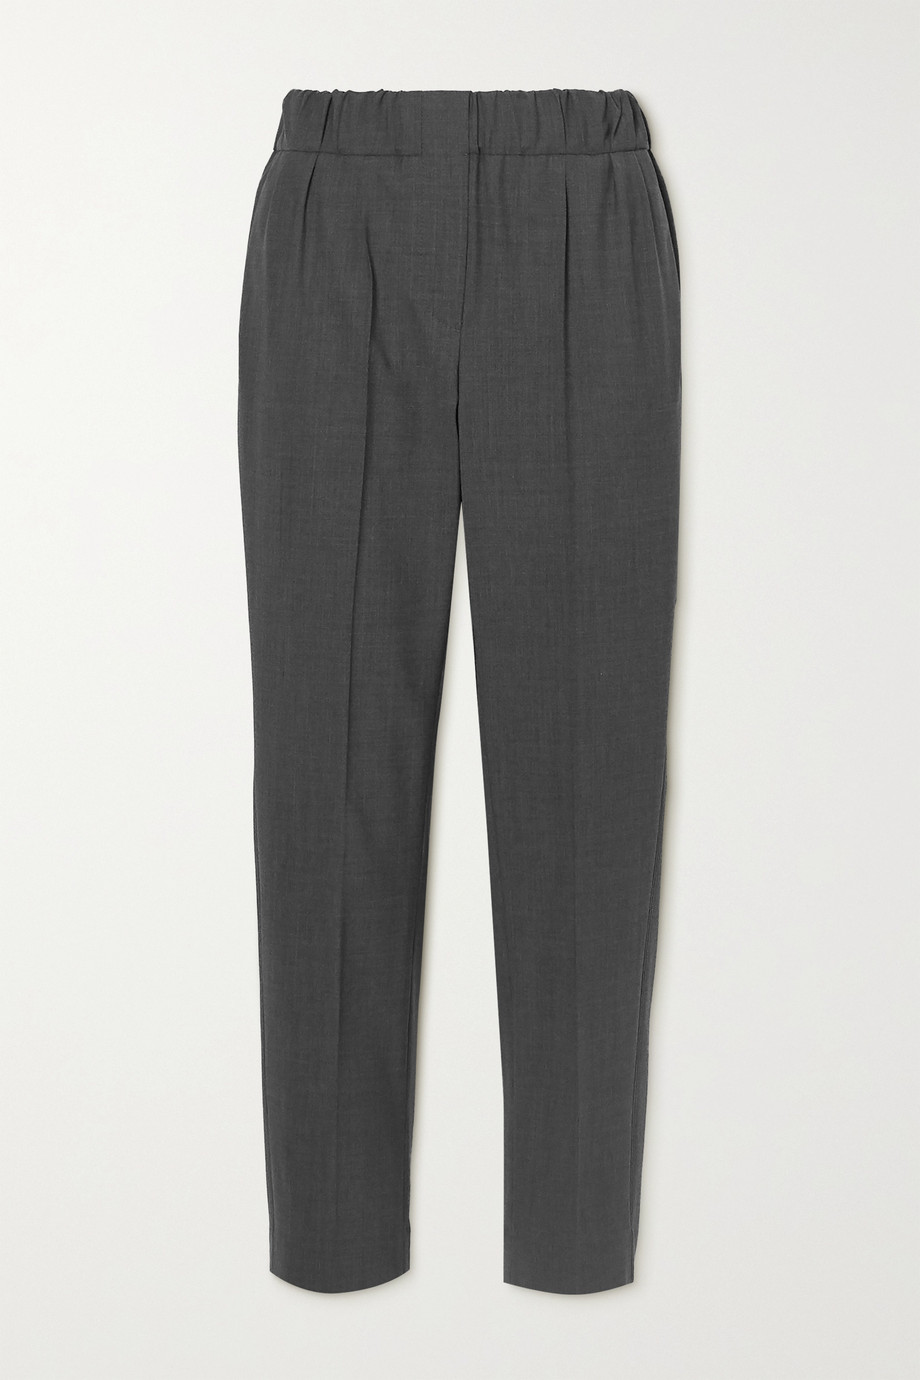 Brunello Cucinelli Cropped wool-blend straight-leg pants